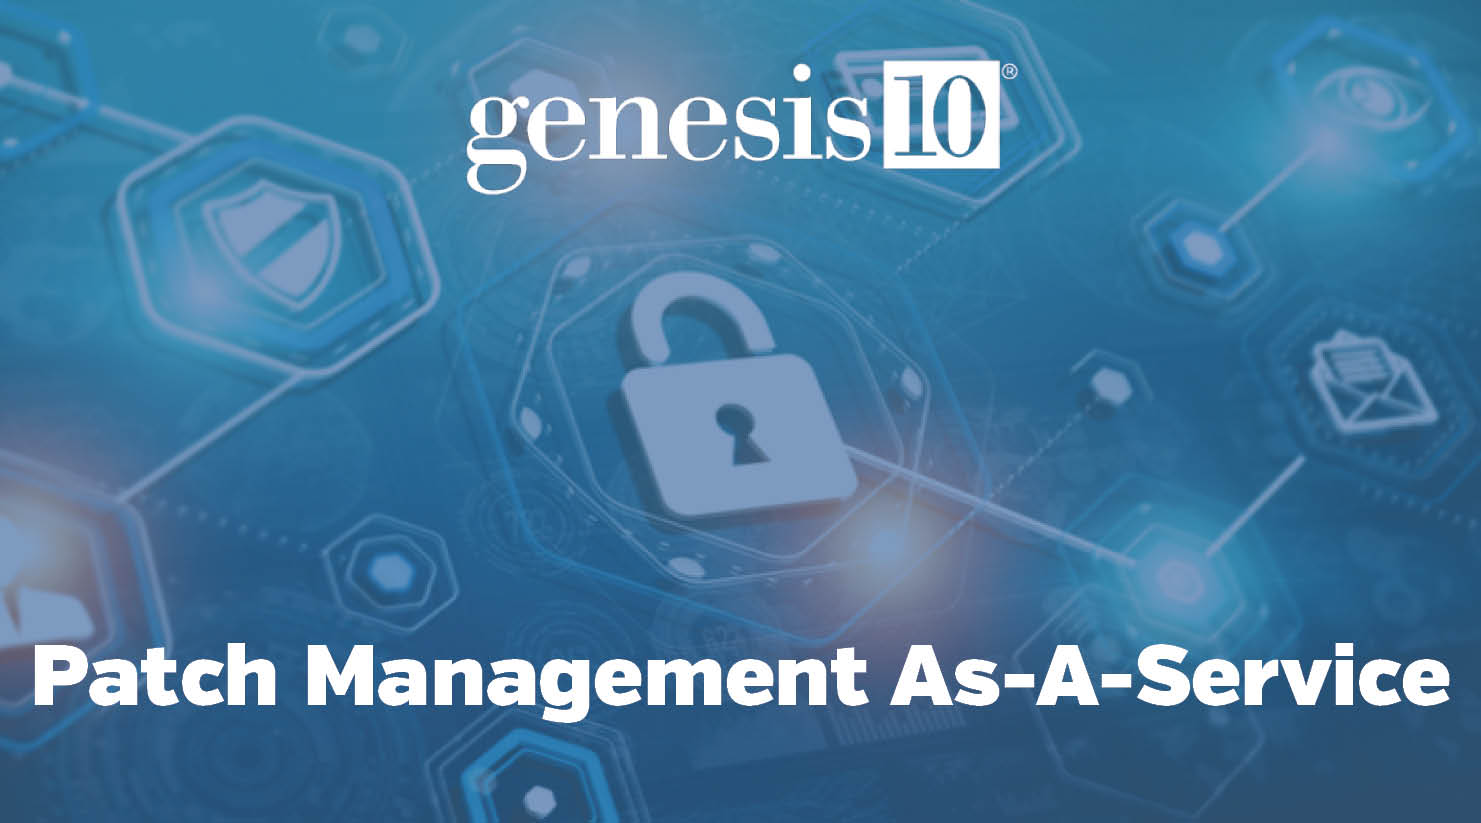 Genesis10 - Patch Management prevents Cyberattacks